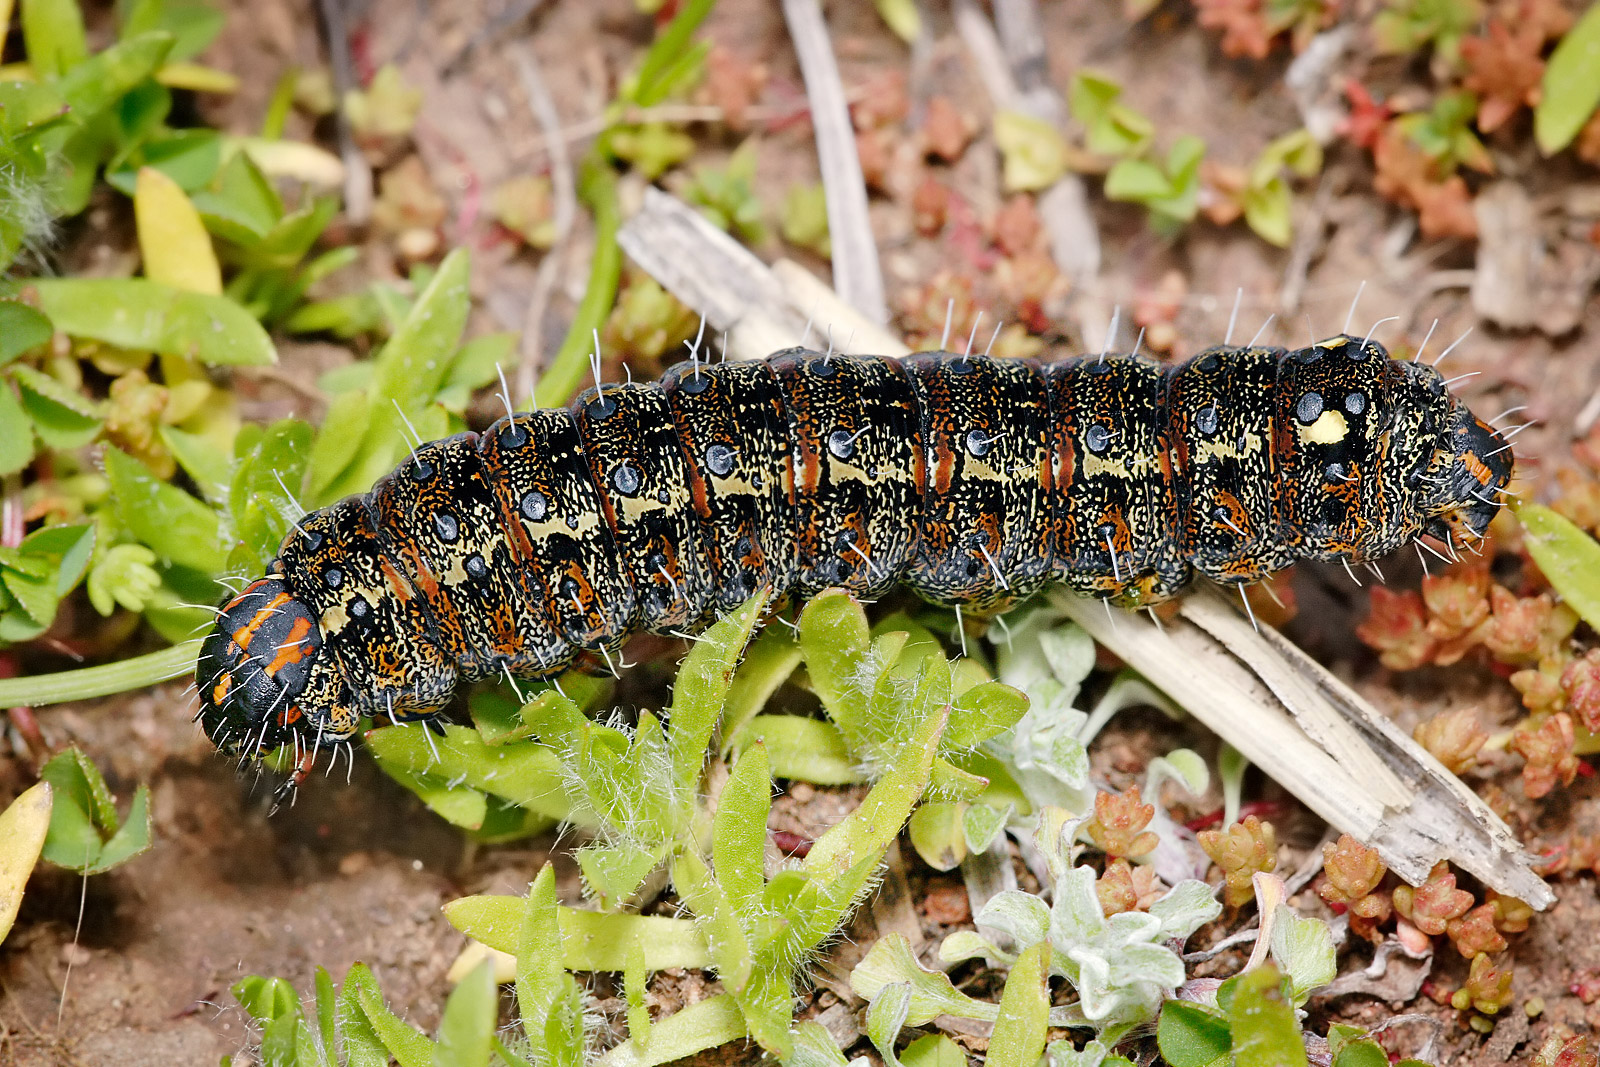 What Do Caterpillars Like To Eat And Drink